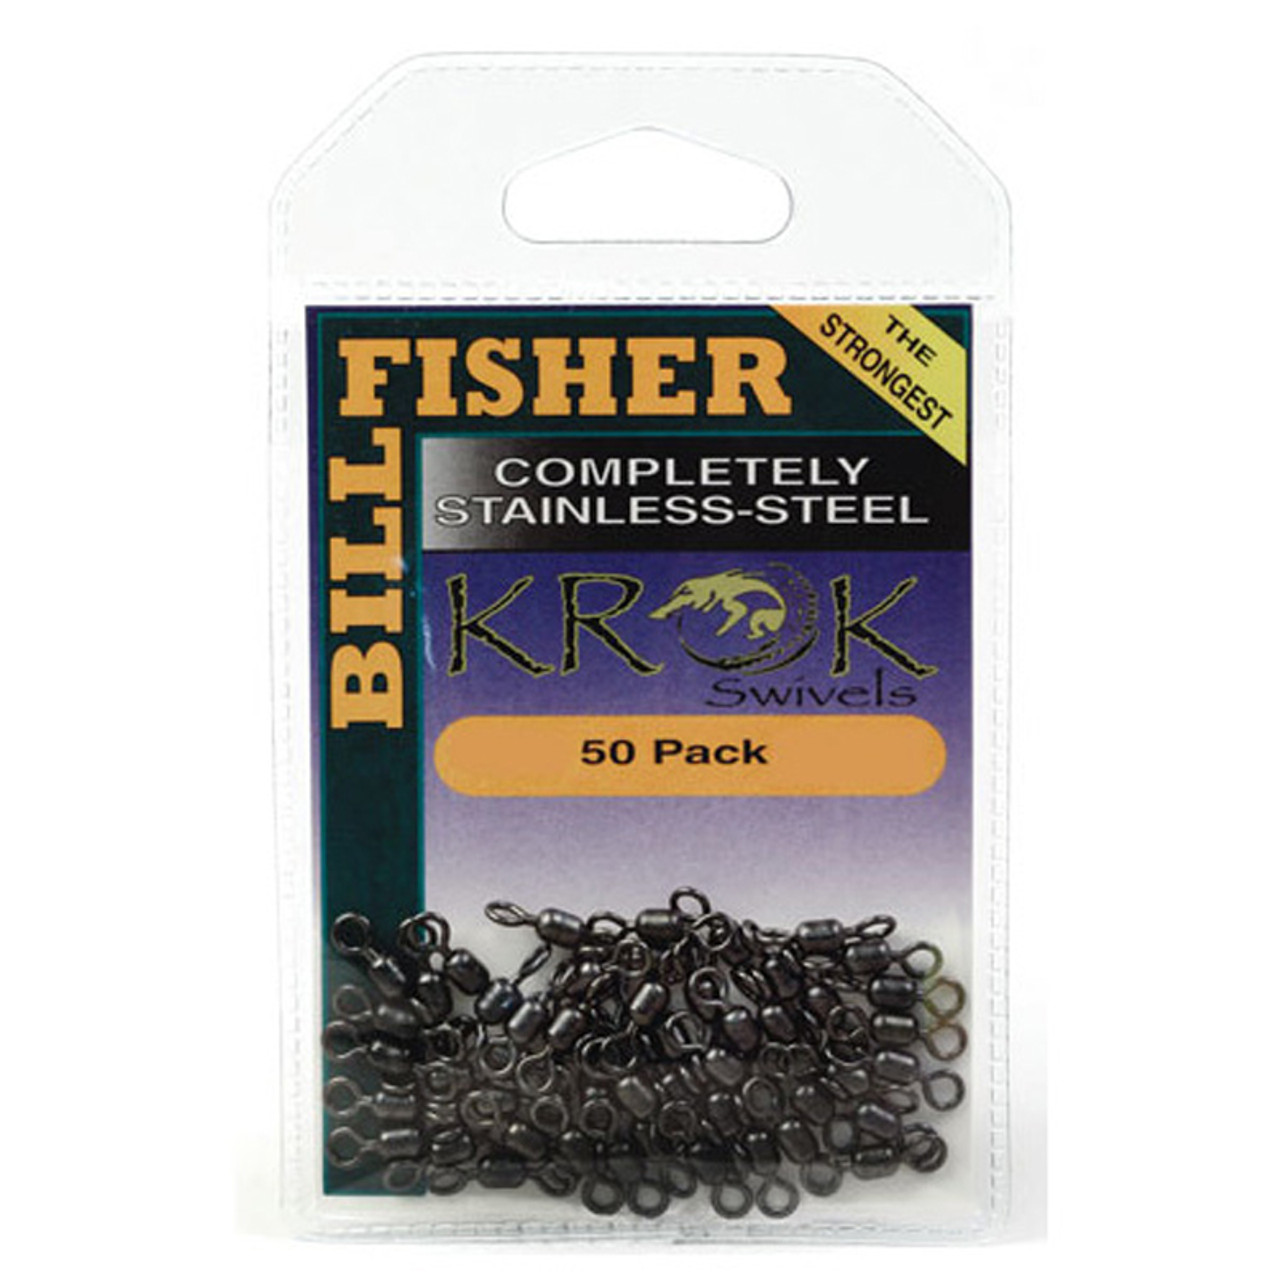 Krok Billfisher Swivels 180 Pound 50 Pack